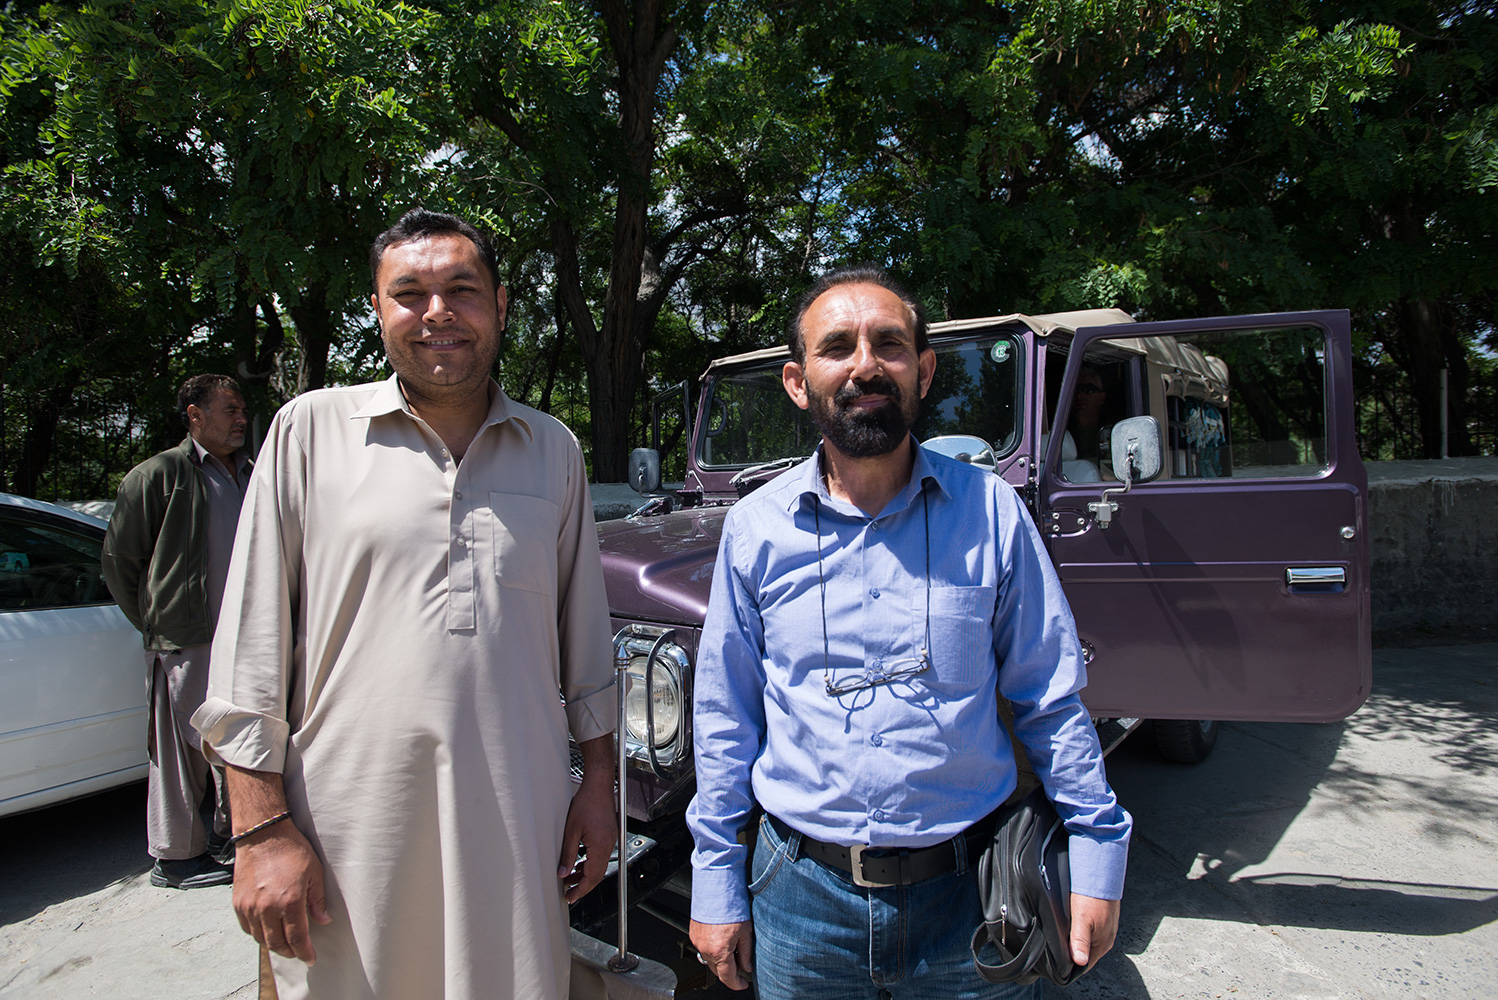 Baltistan Tours!We go back a long way together. I have known Zafar since he was a very young boy. Masha'Allah!